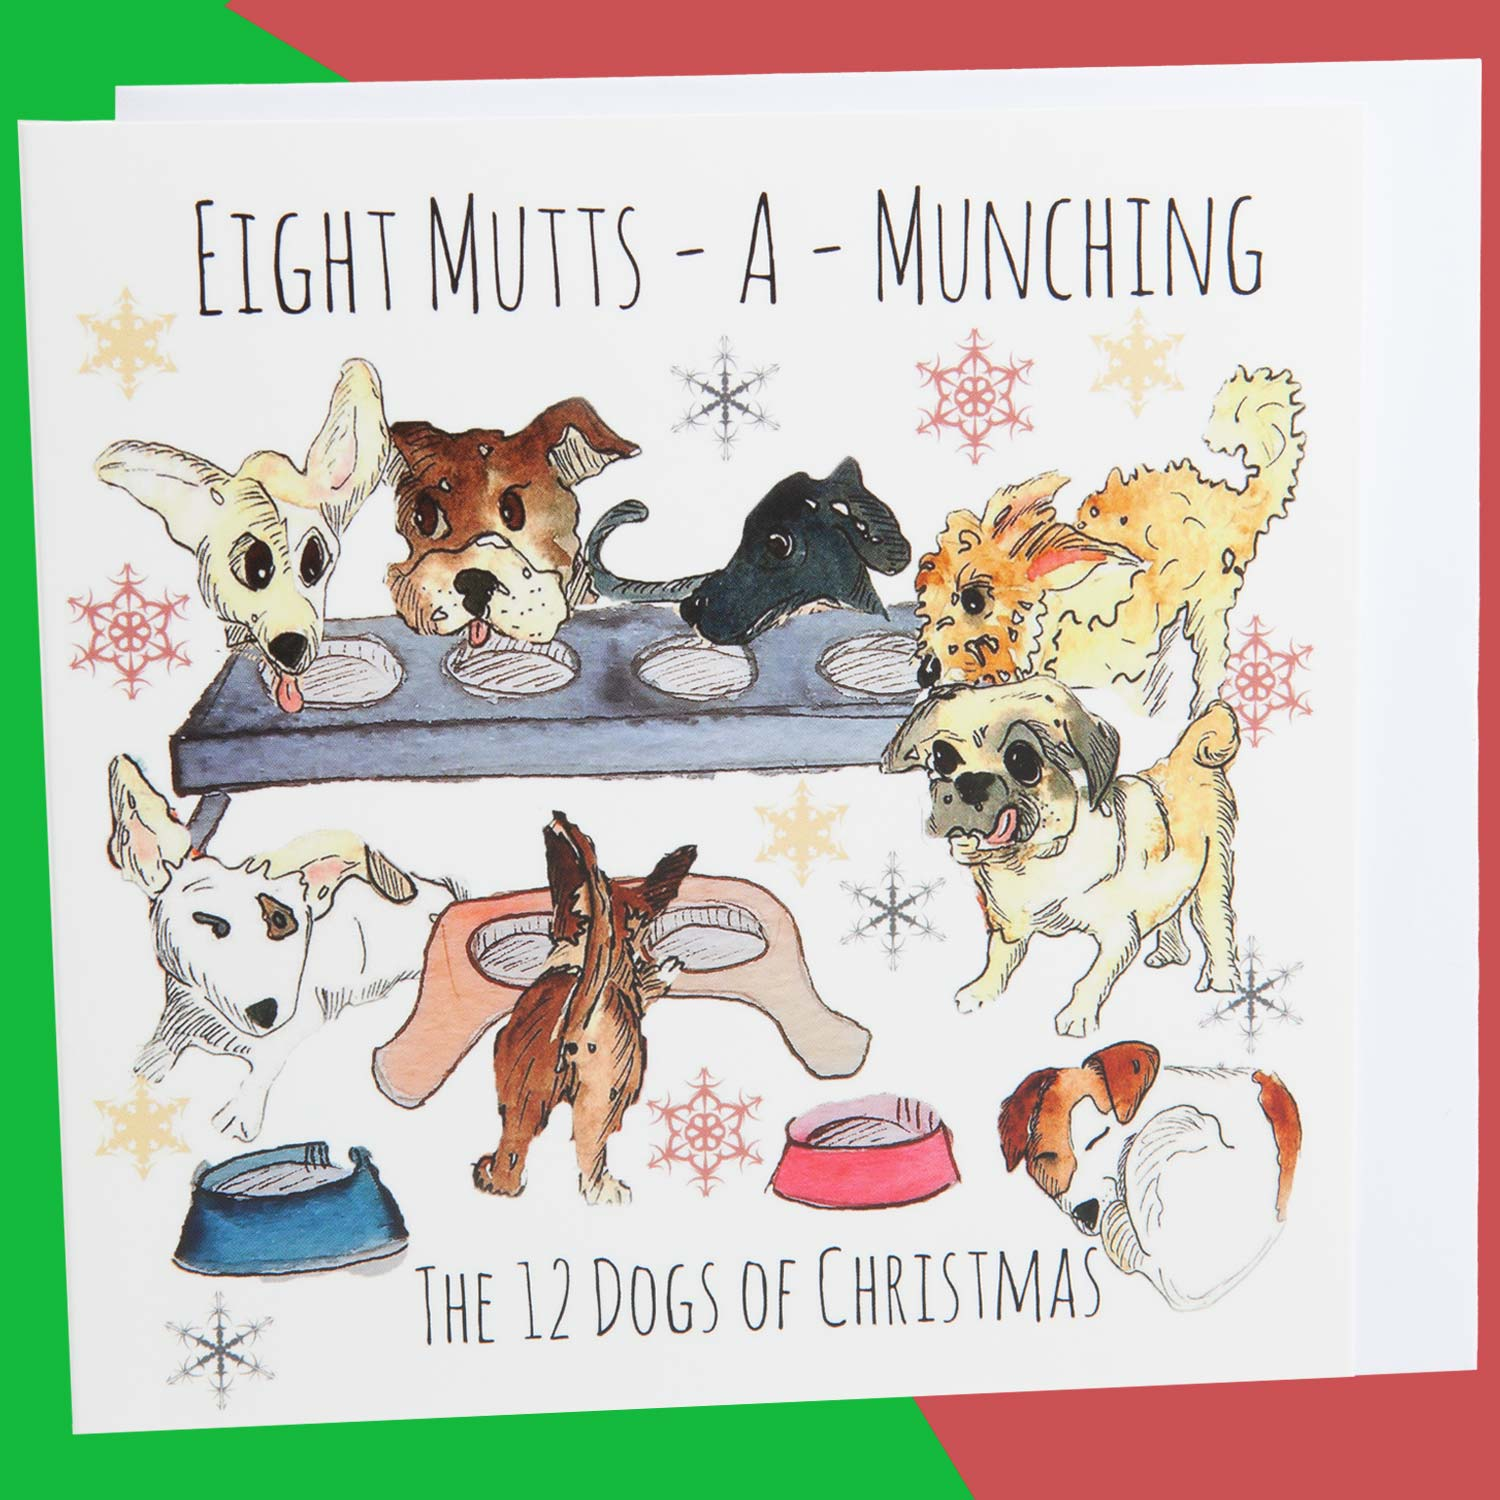 Dog Krazy Gifts - Eight Mutts A Munching - Part of the 12 Dogs of Christmas card collection available from DogKrazyGifts.co.uk